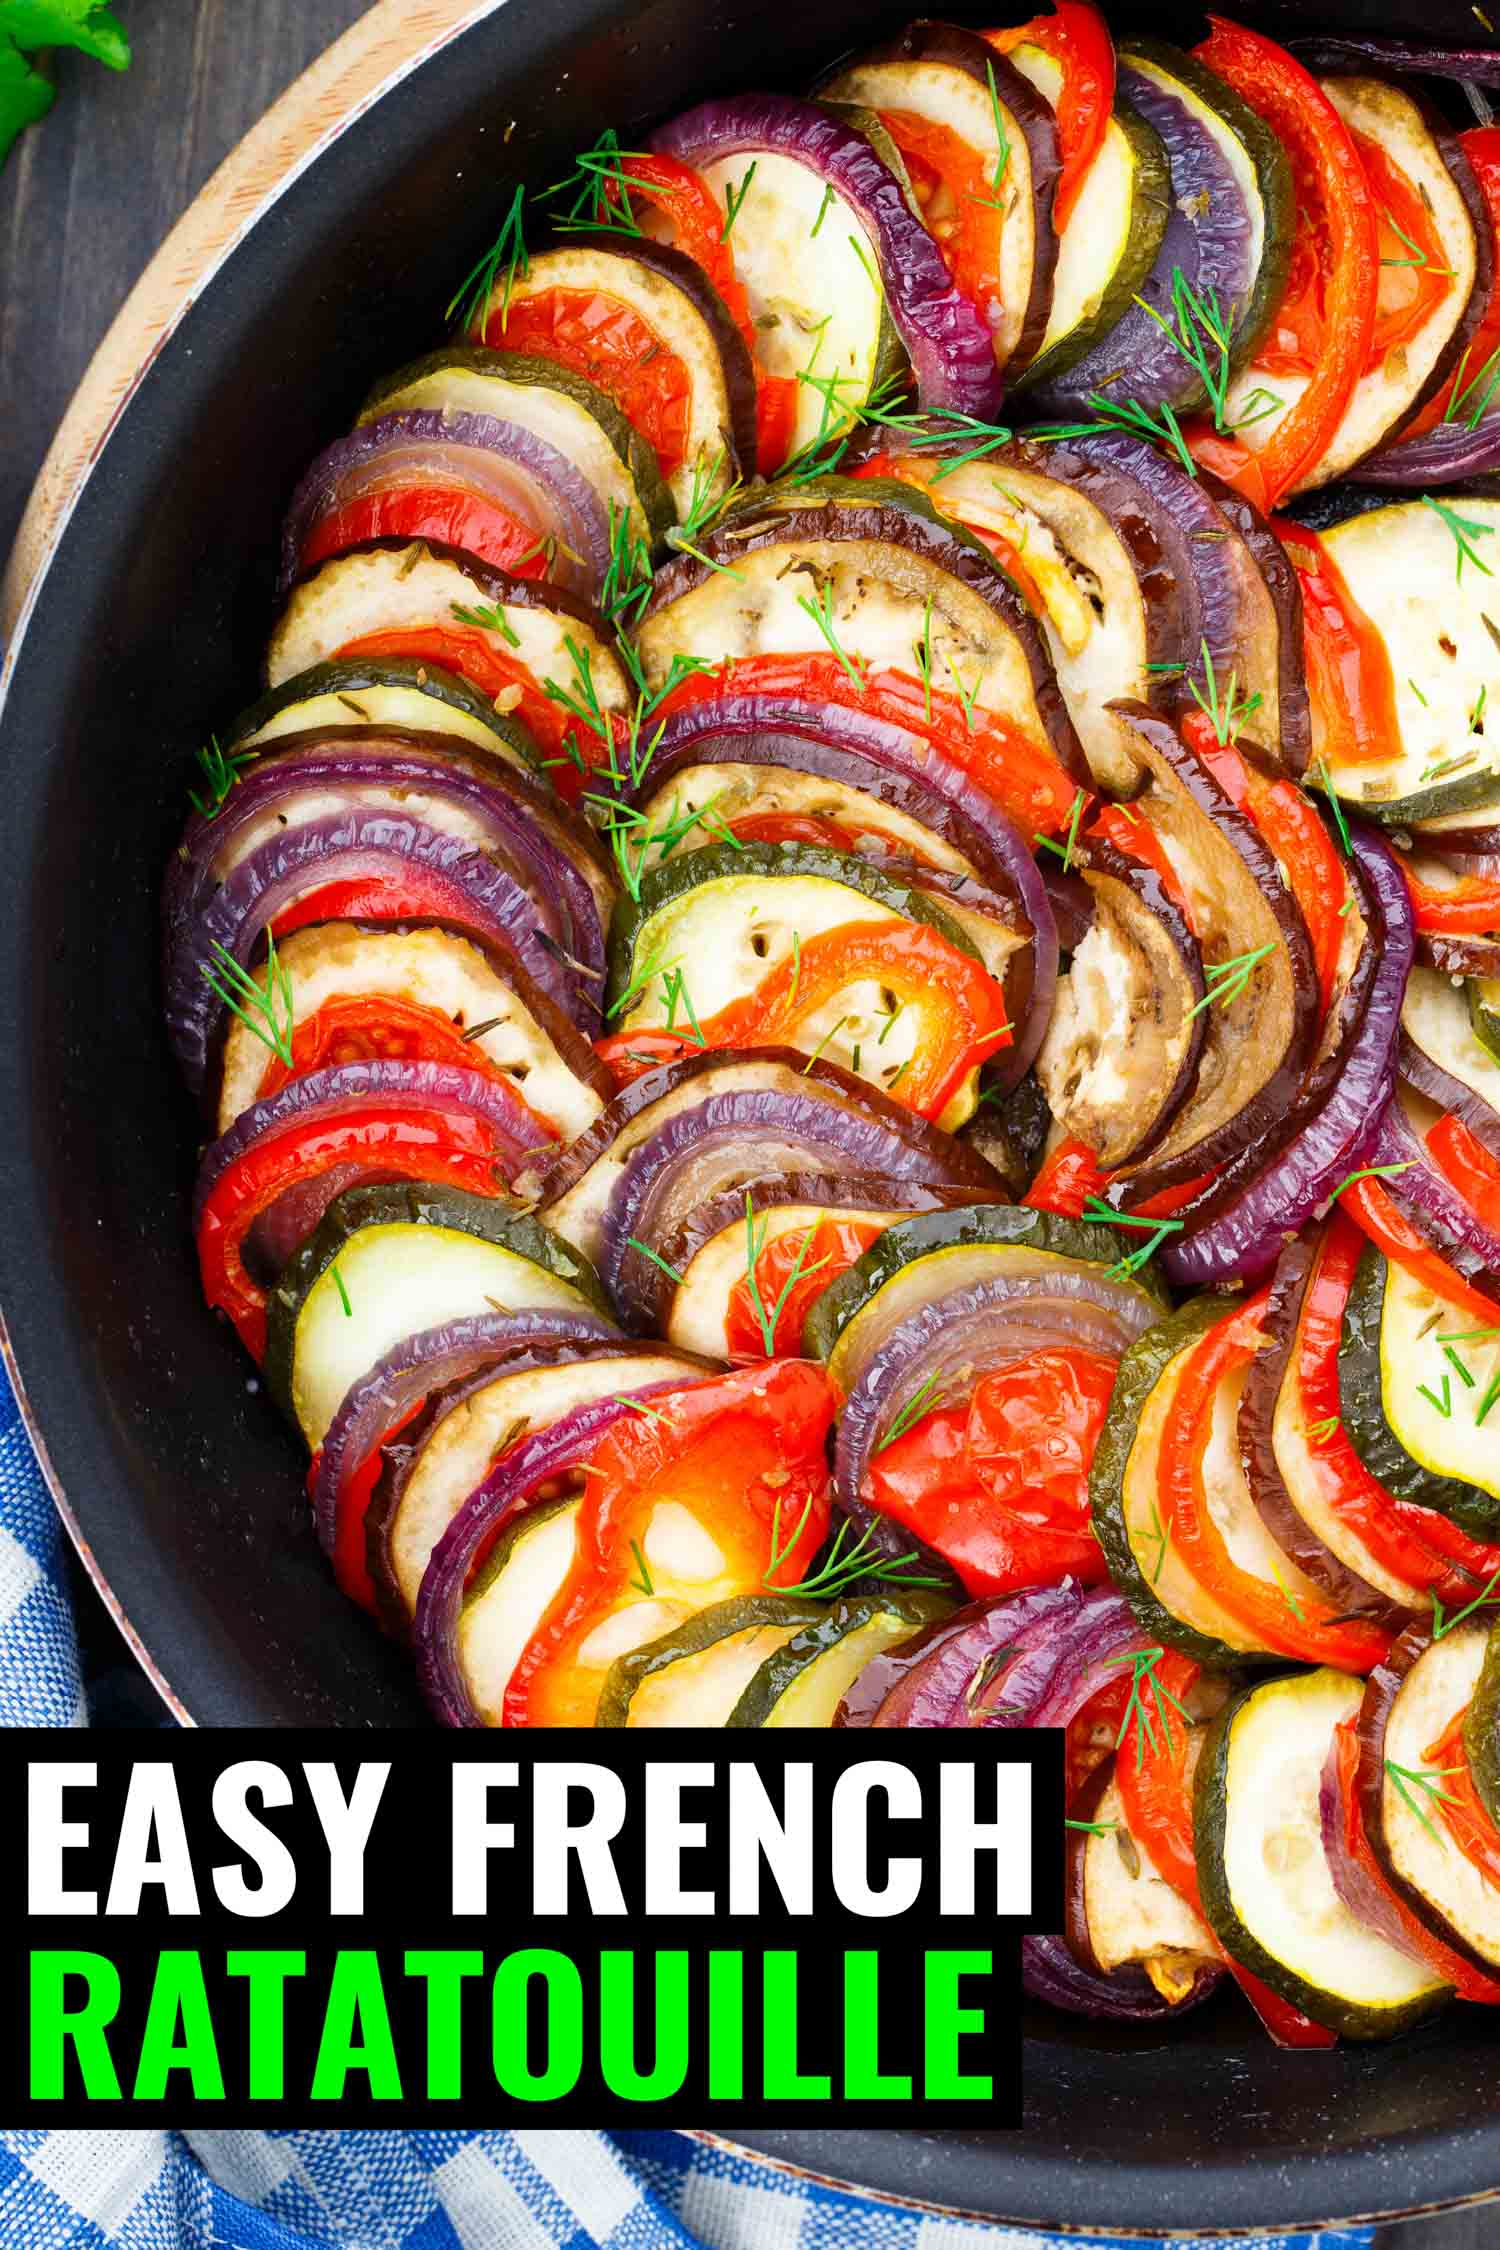 French ratatouille dish